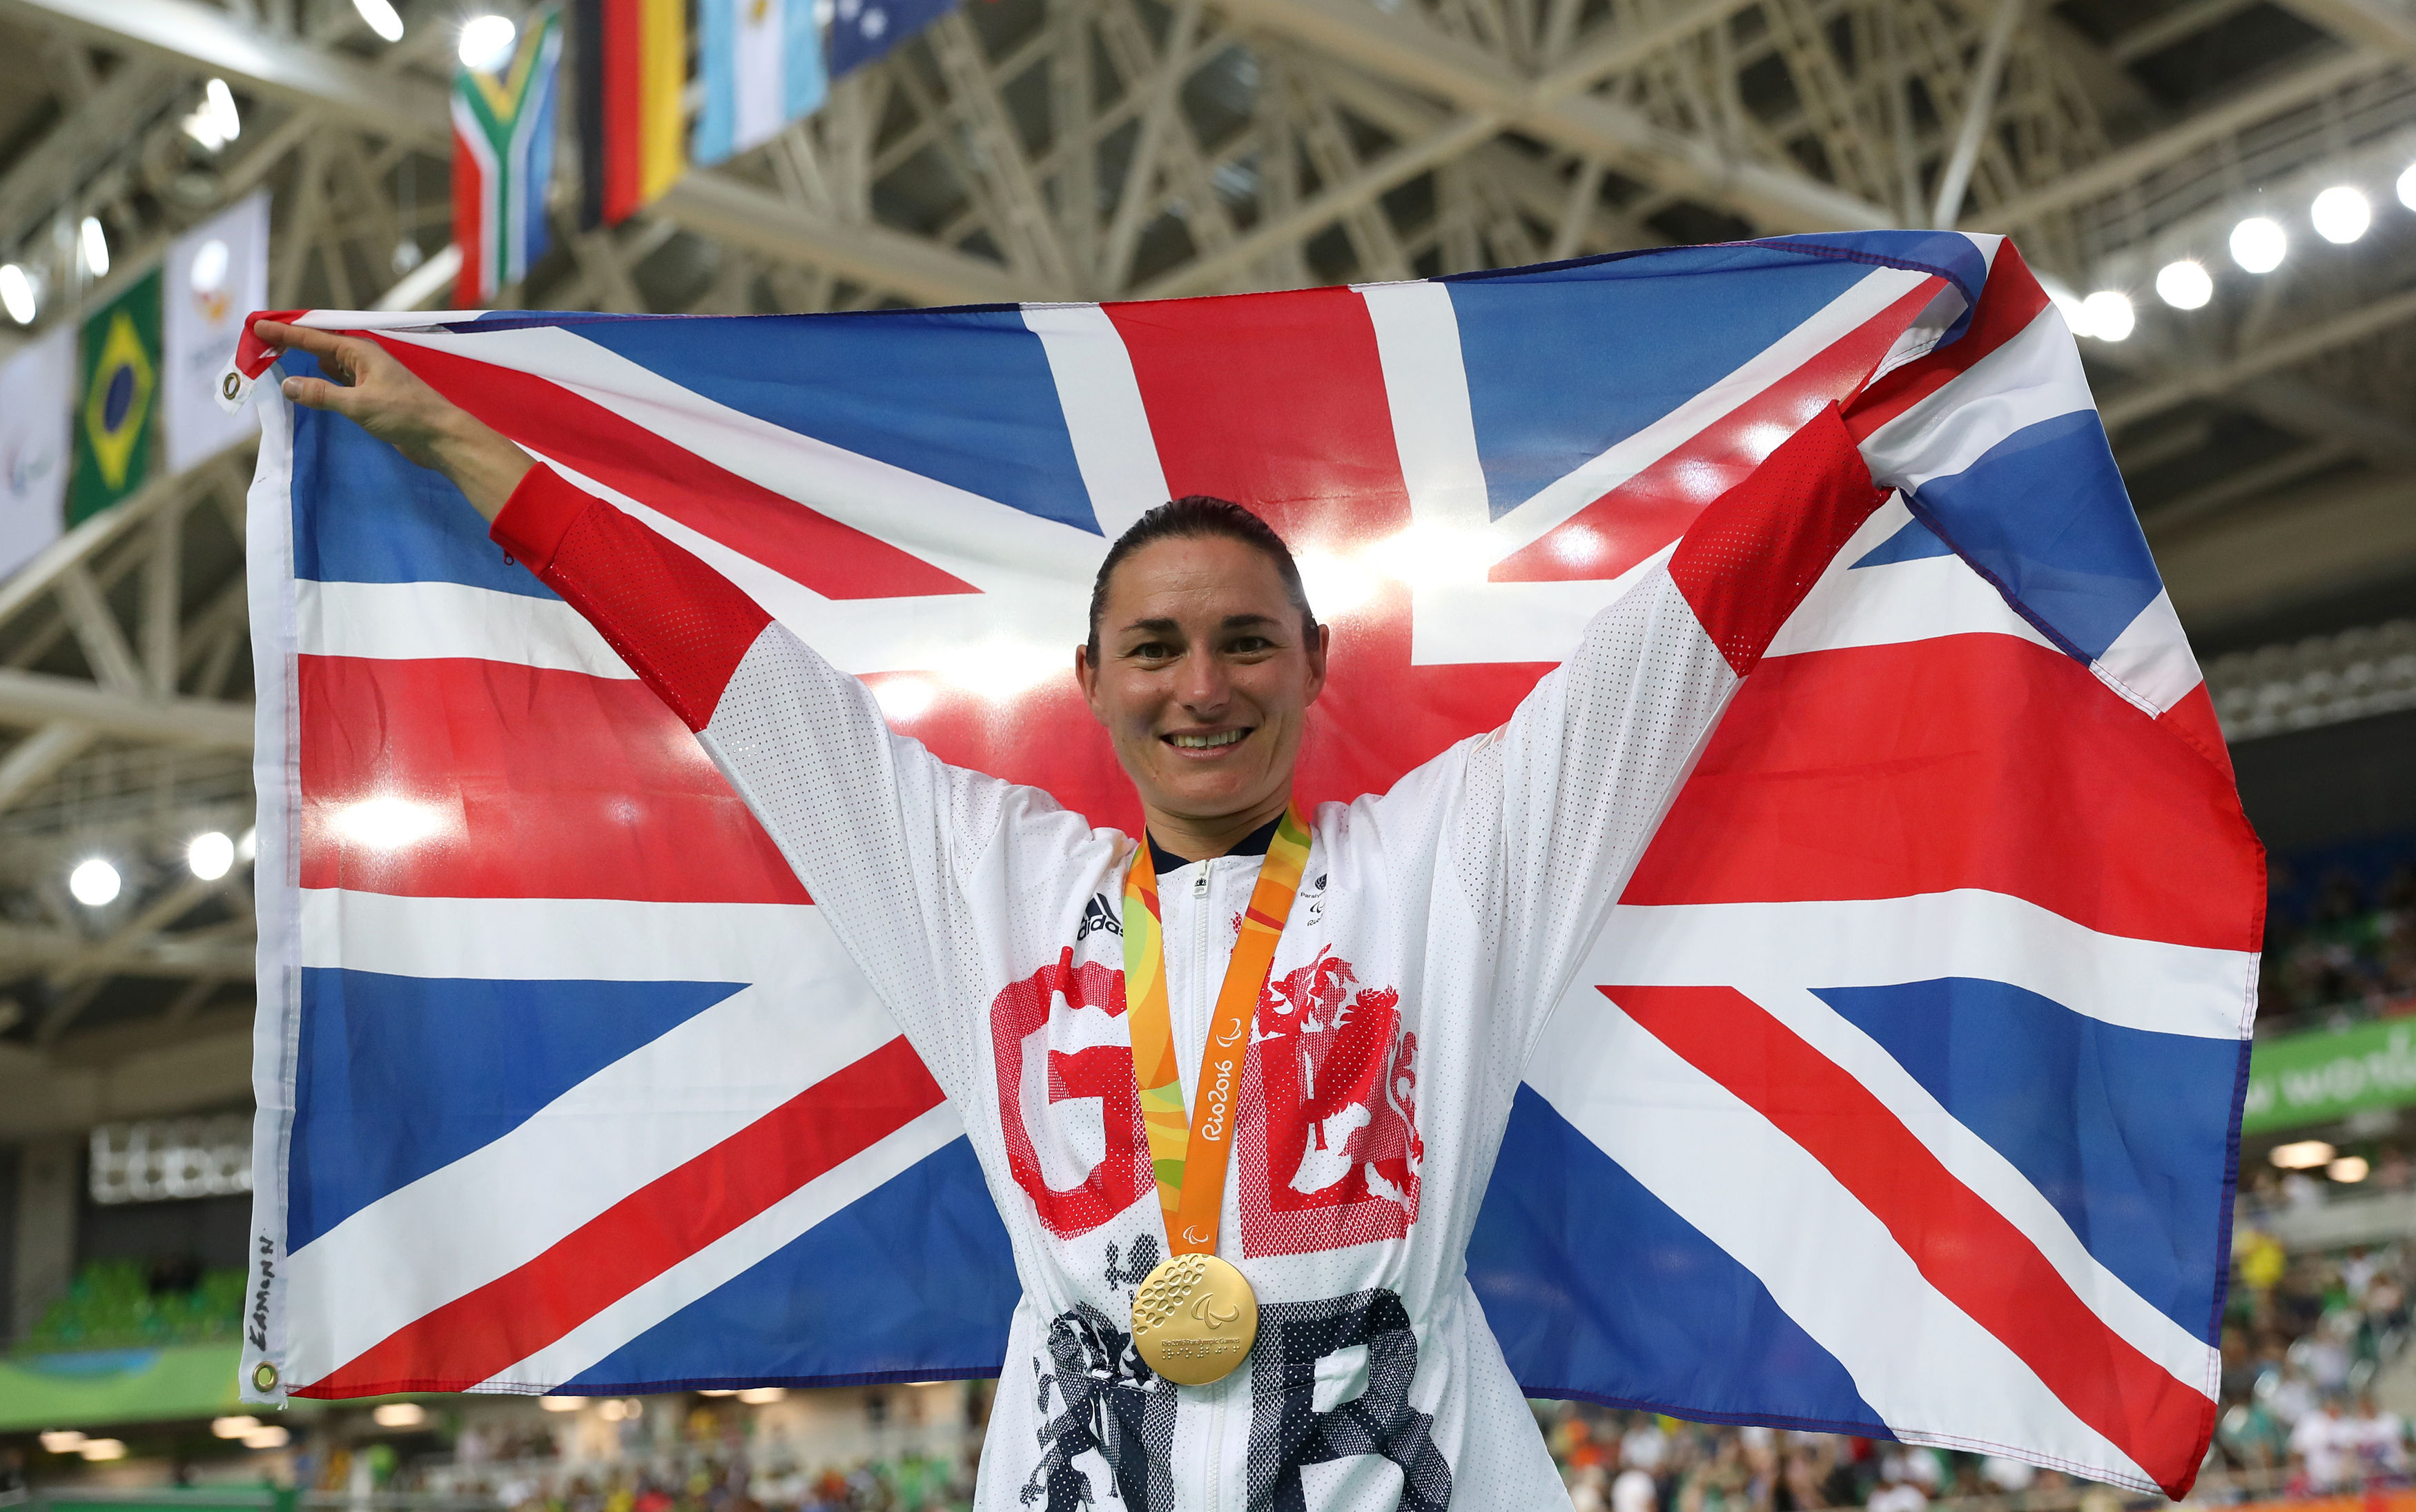 Sarah Storey is the UKs most successful Paralympian of all time